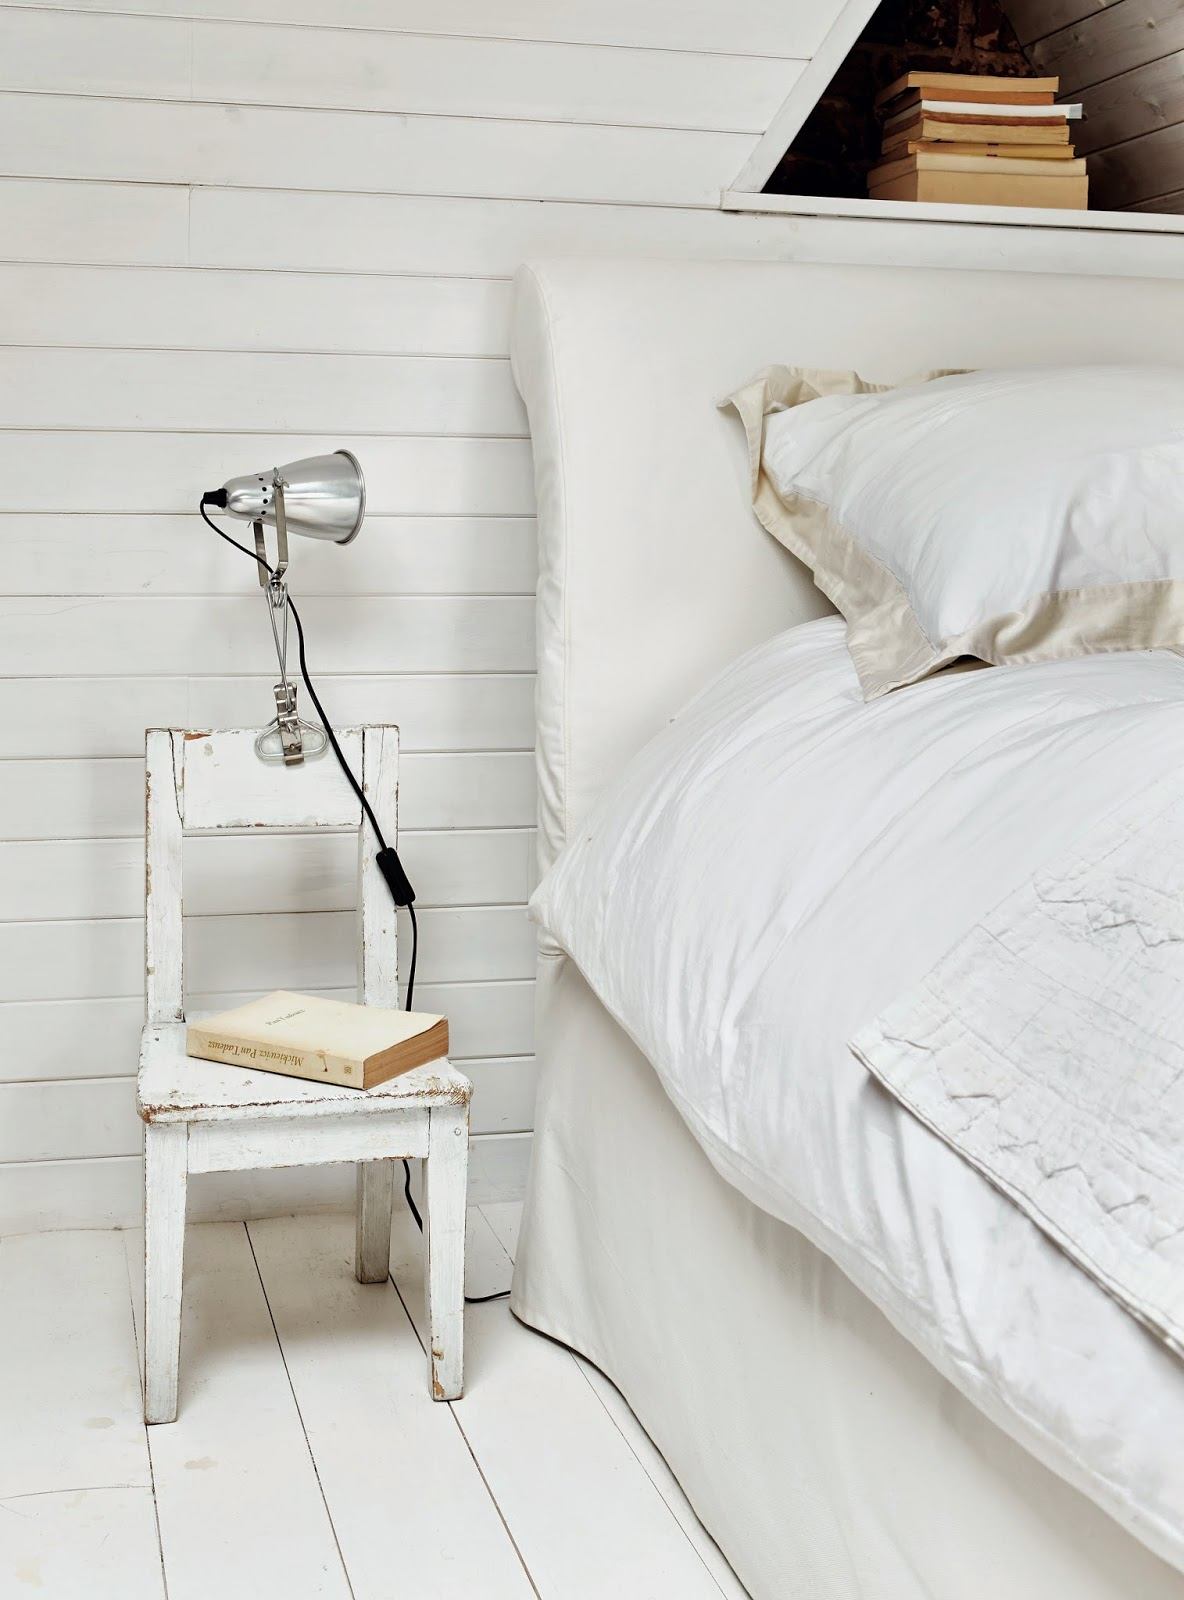 chair next to bed as nightstand